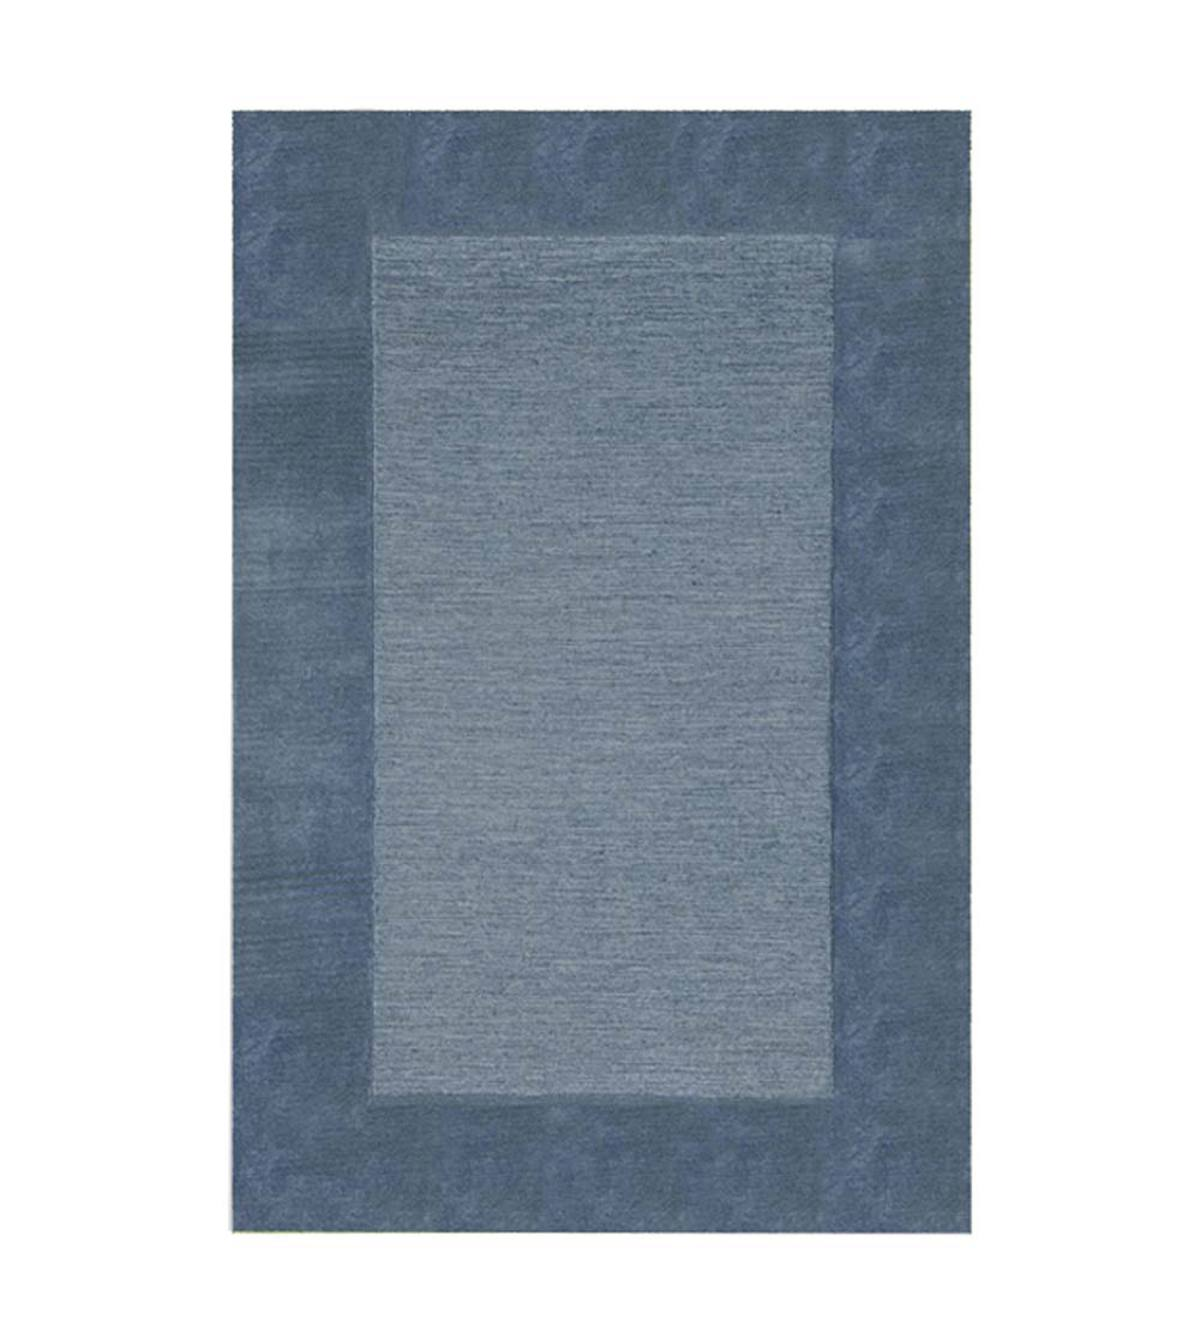 Madrid Banded Rectangular Hearth Rug, 2' x 4' - Blue Steel